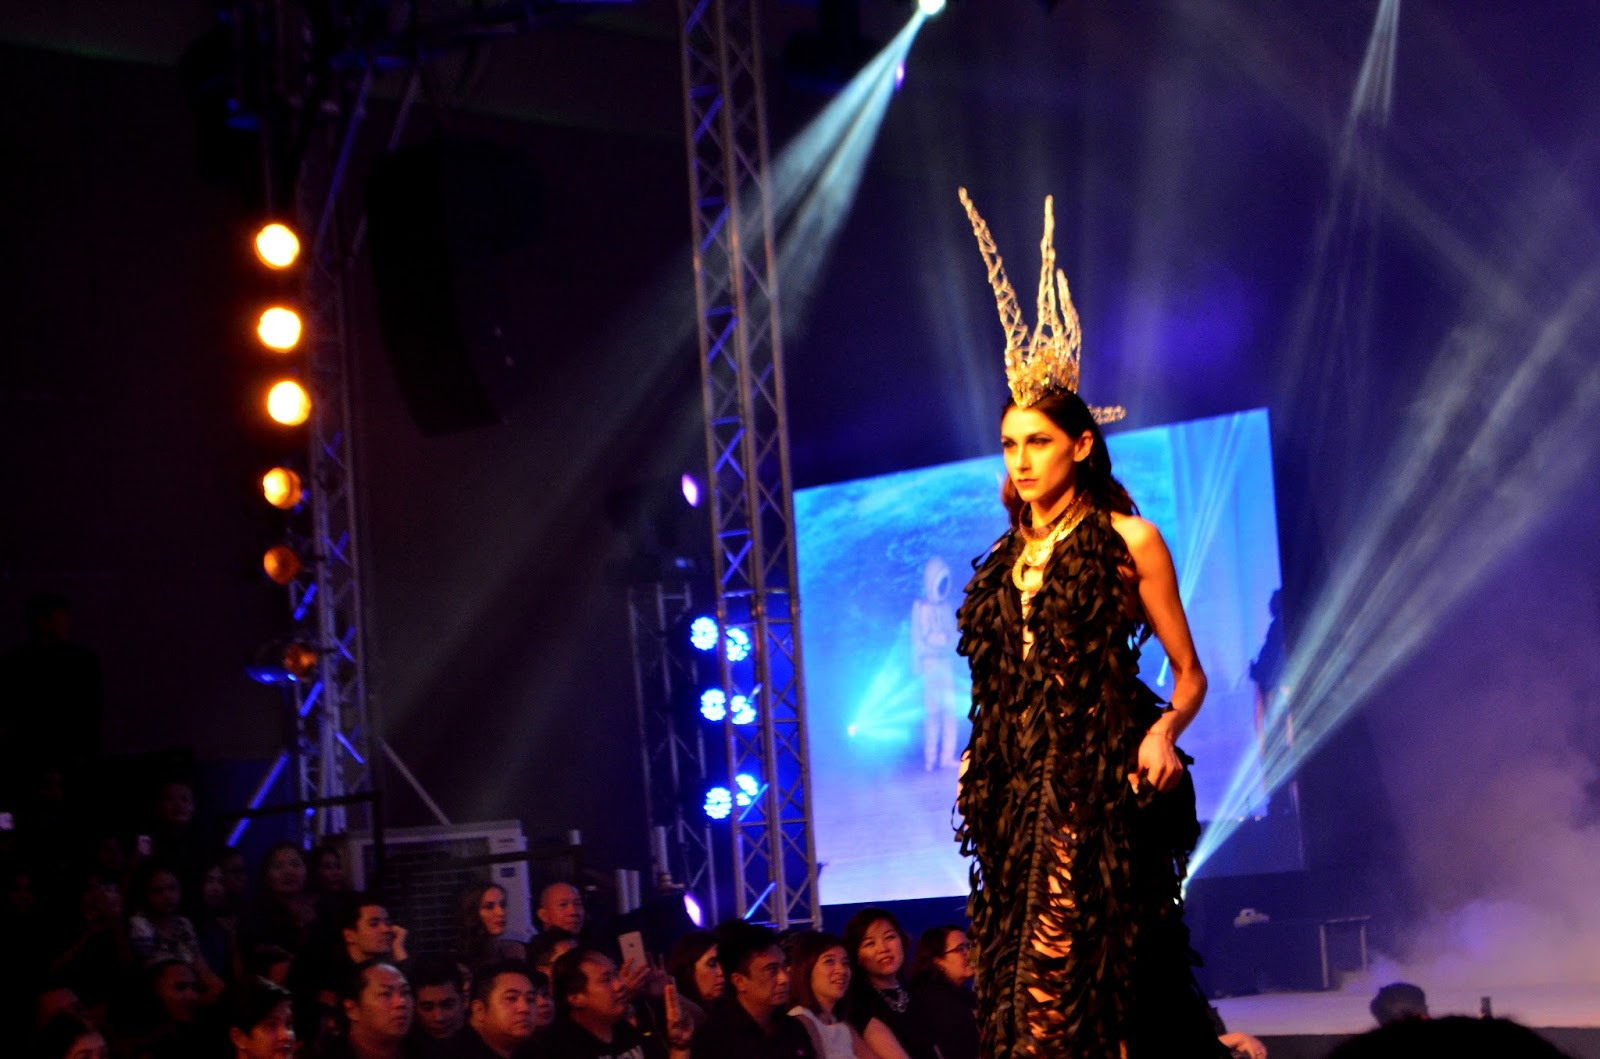 ILLUMINATE: Ignite the Light Dino Bancorro & Estien Quijano collection